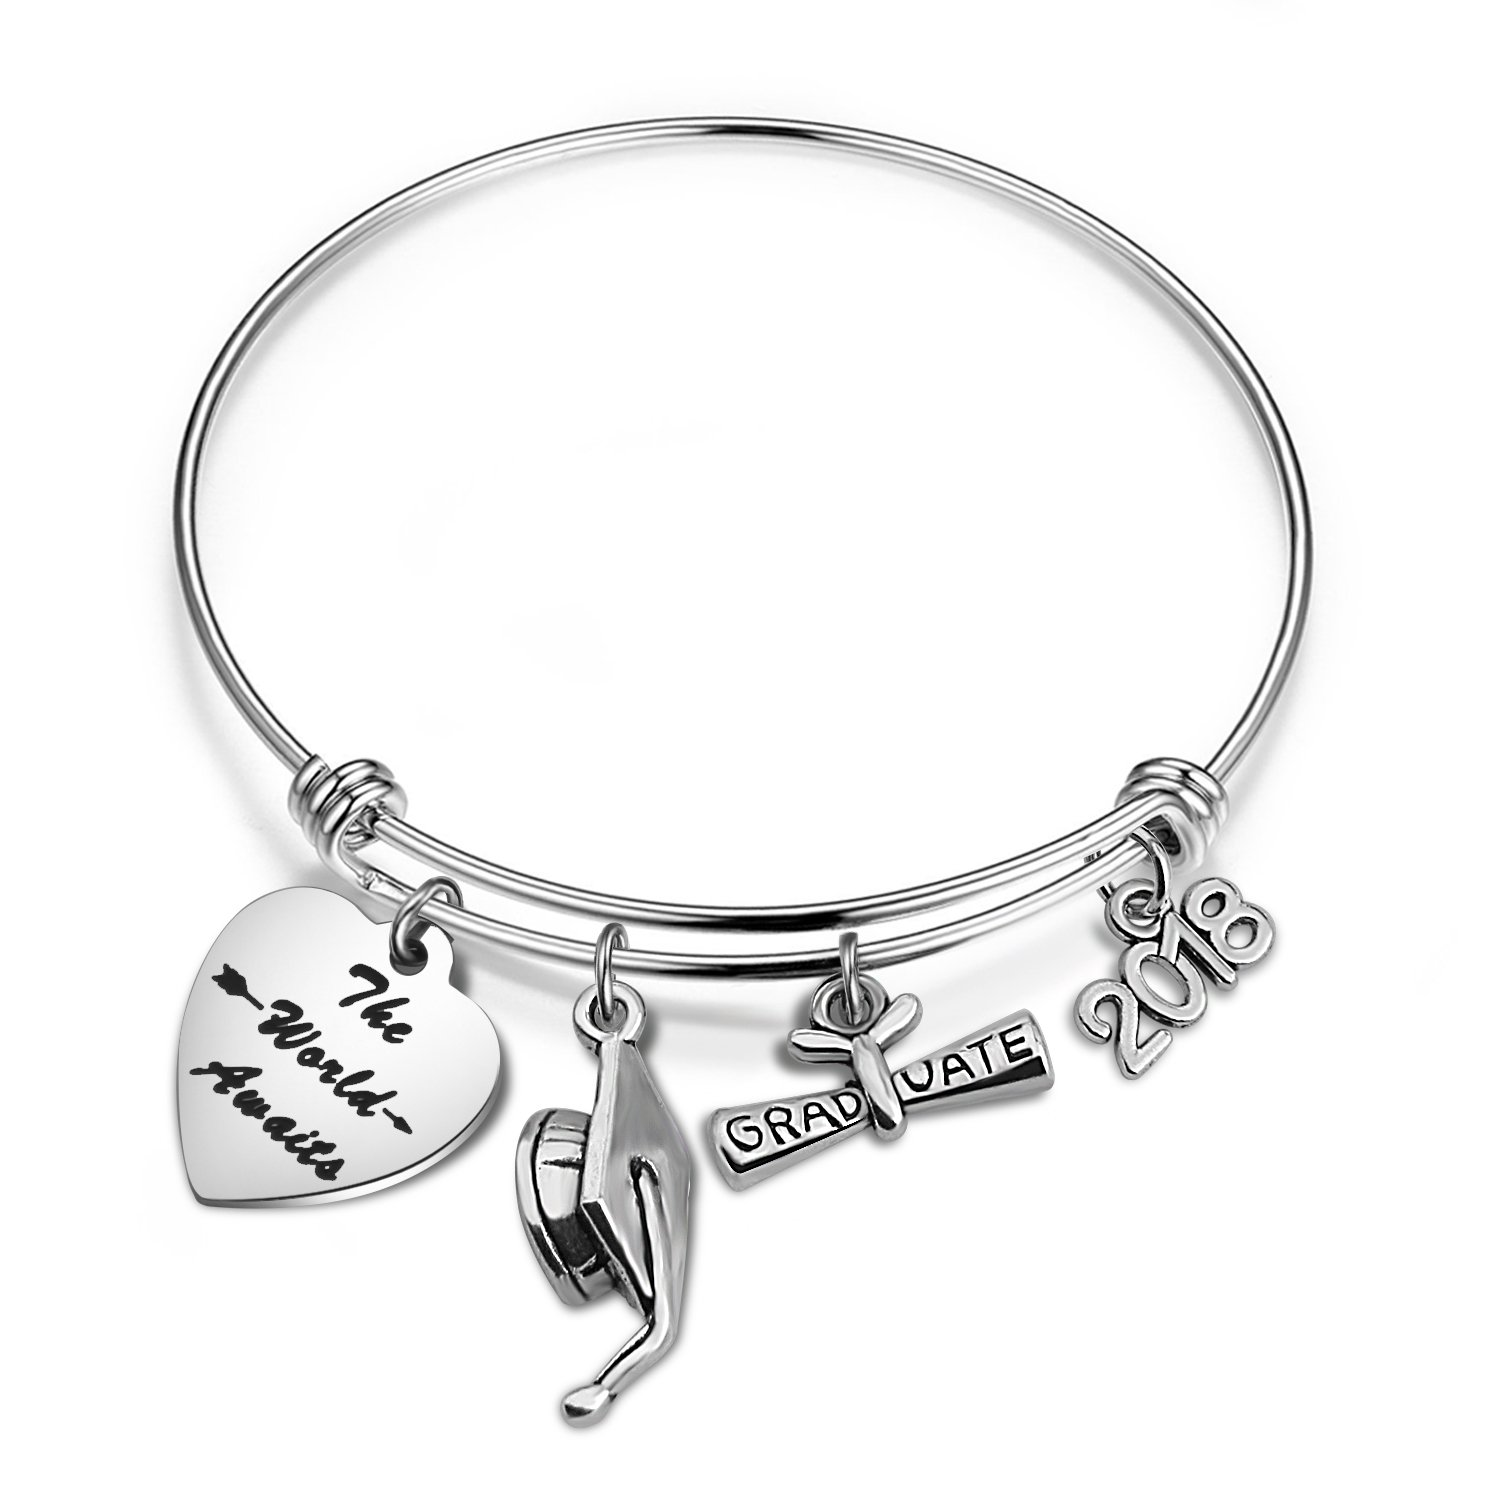 bobauna Graduation Gift The World Awaits Bracelet with Grad Cap Diploma 2018 Charms Gift for Class of 2018 Graduate